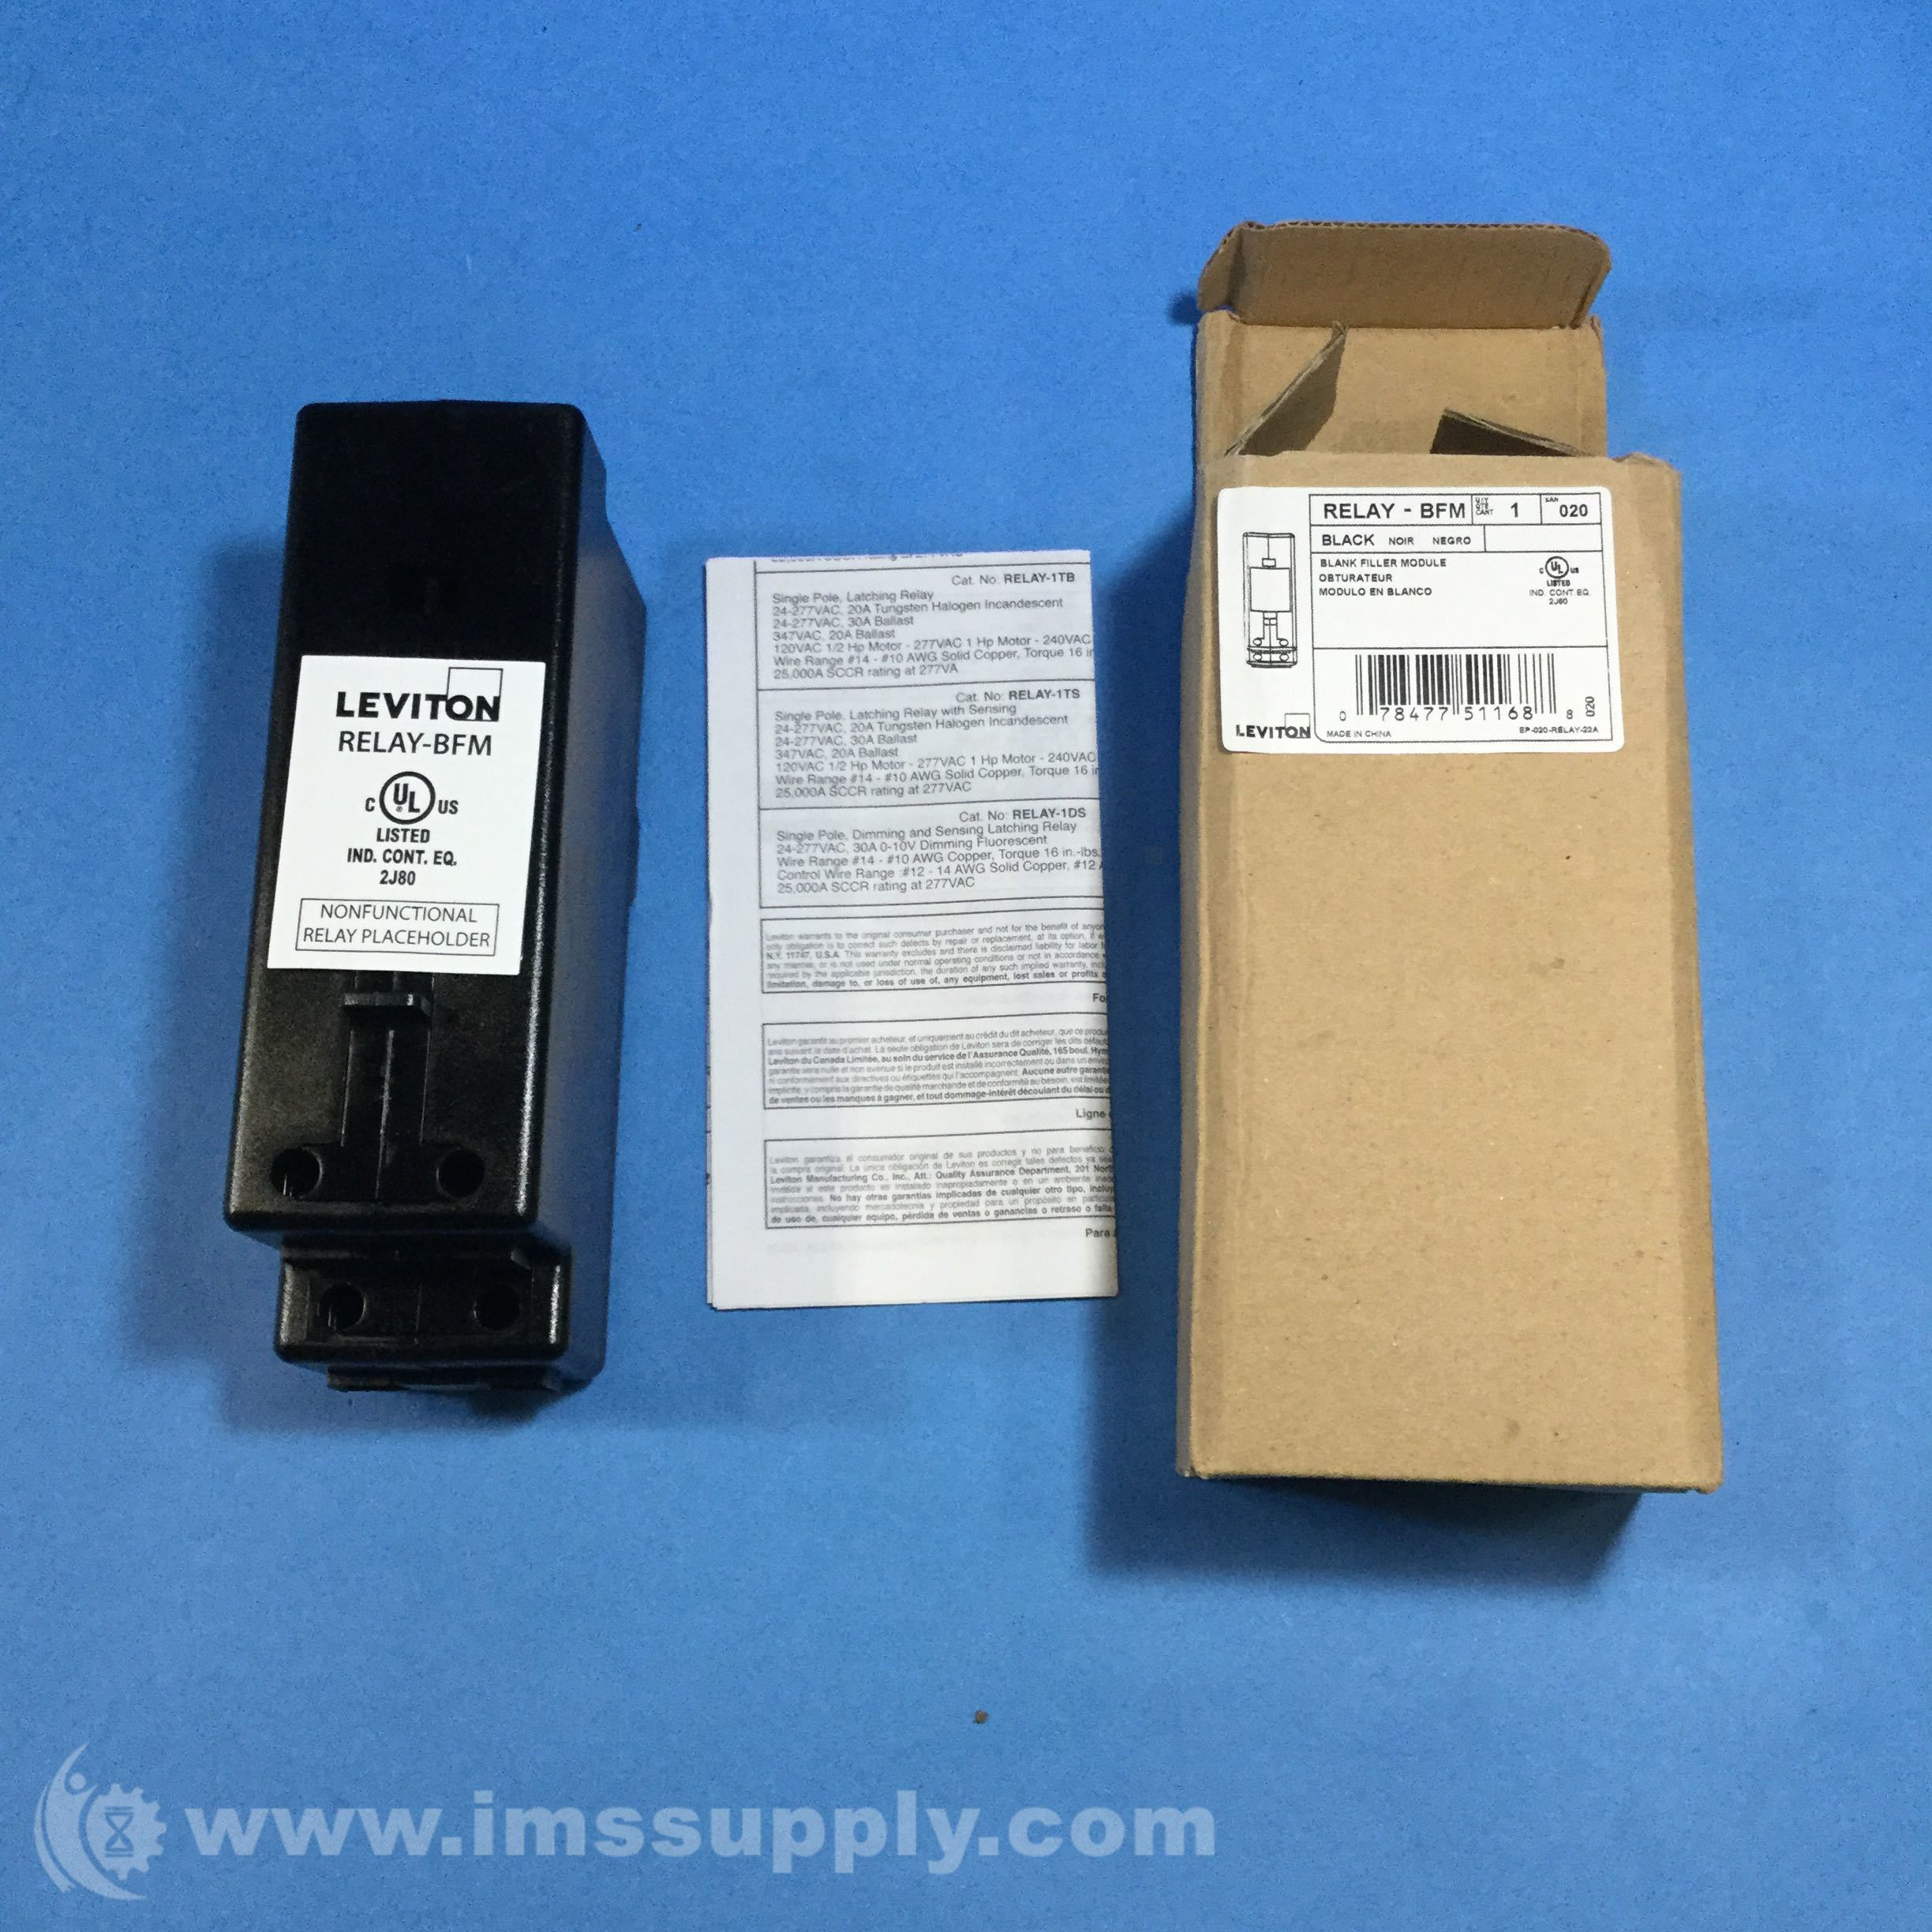 Leviton Relay-BFM Blank Filler Module - IMS Supply